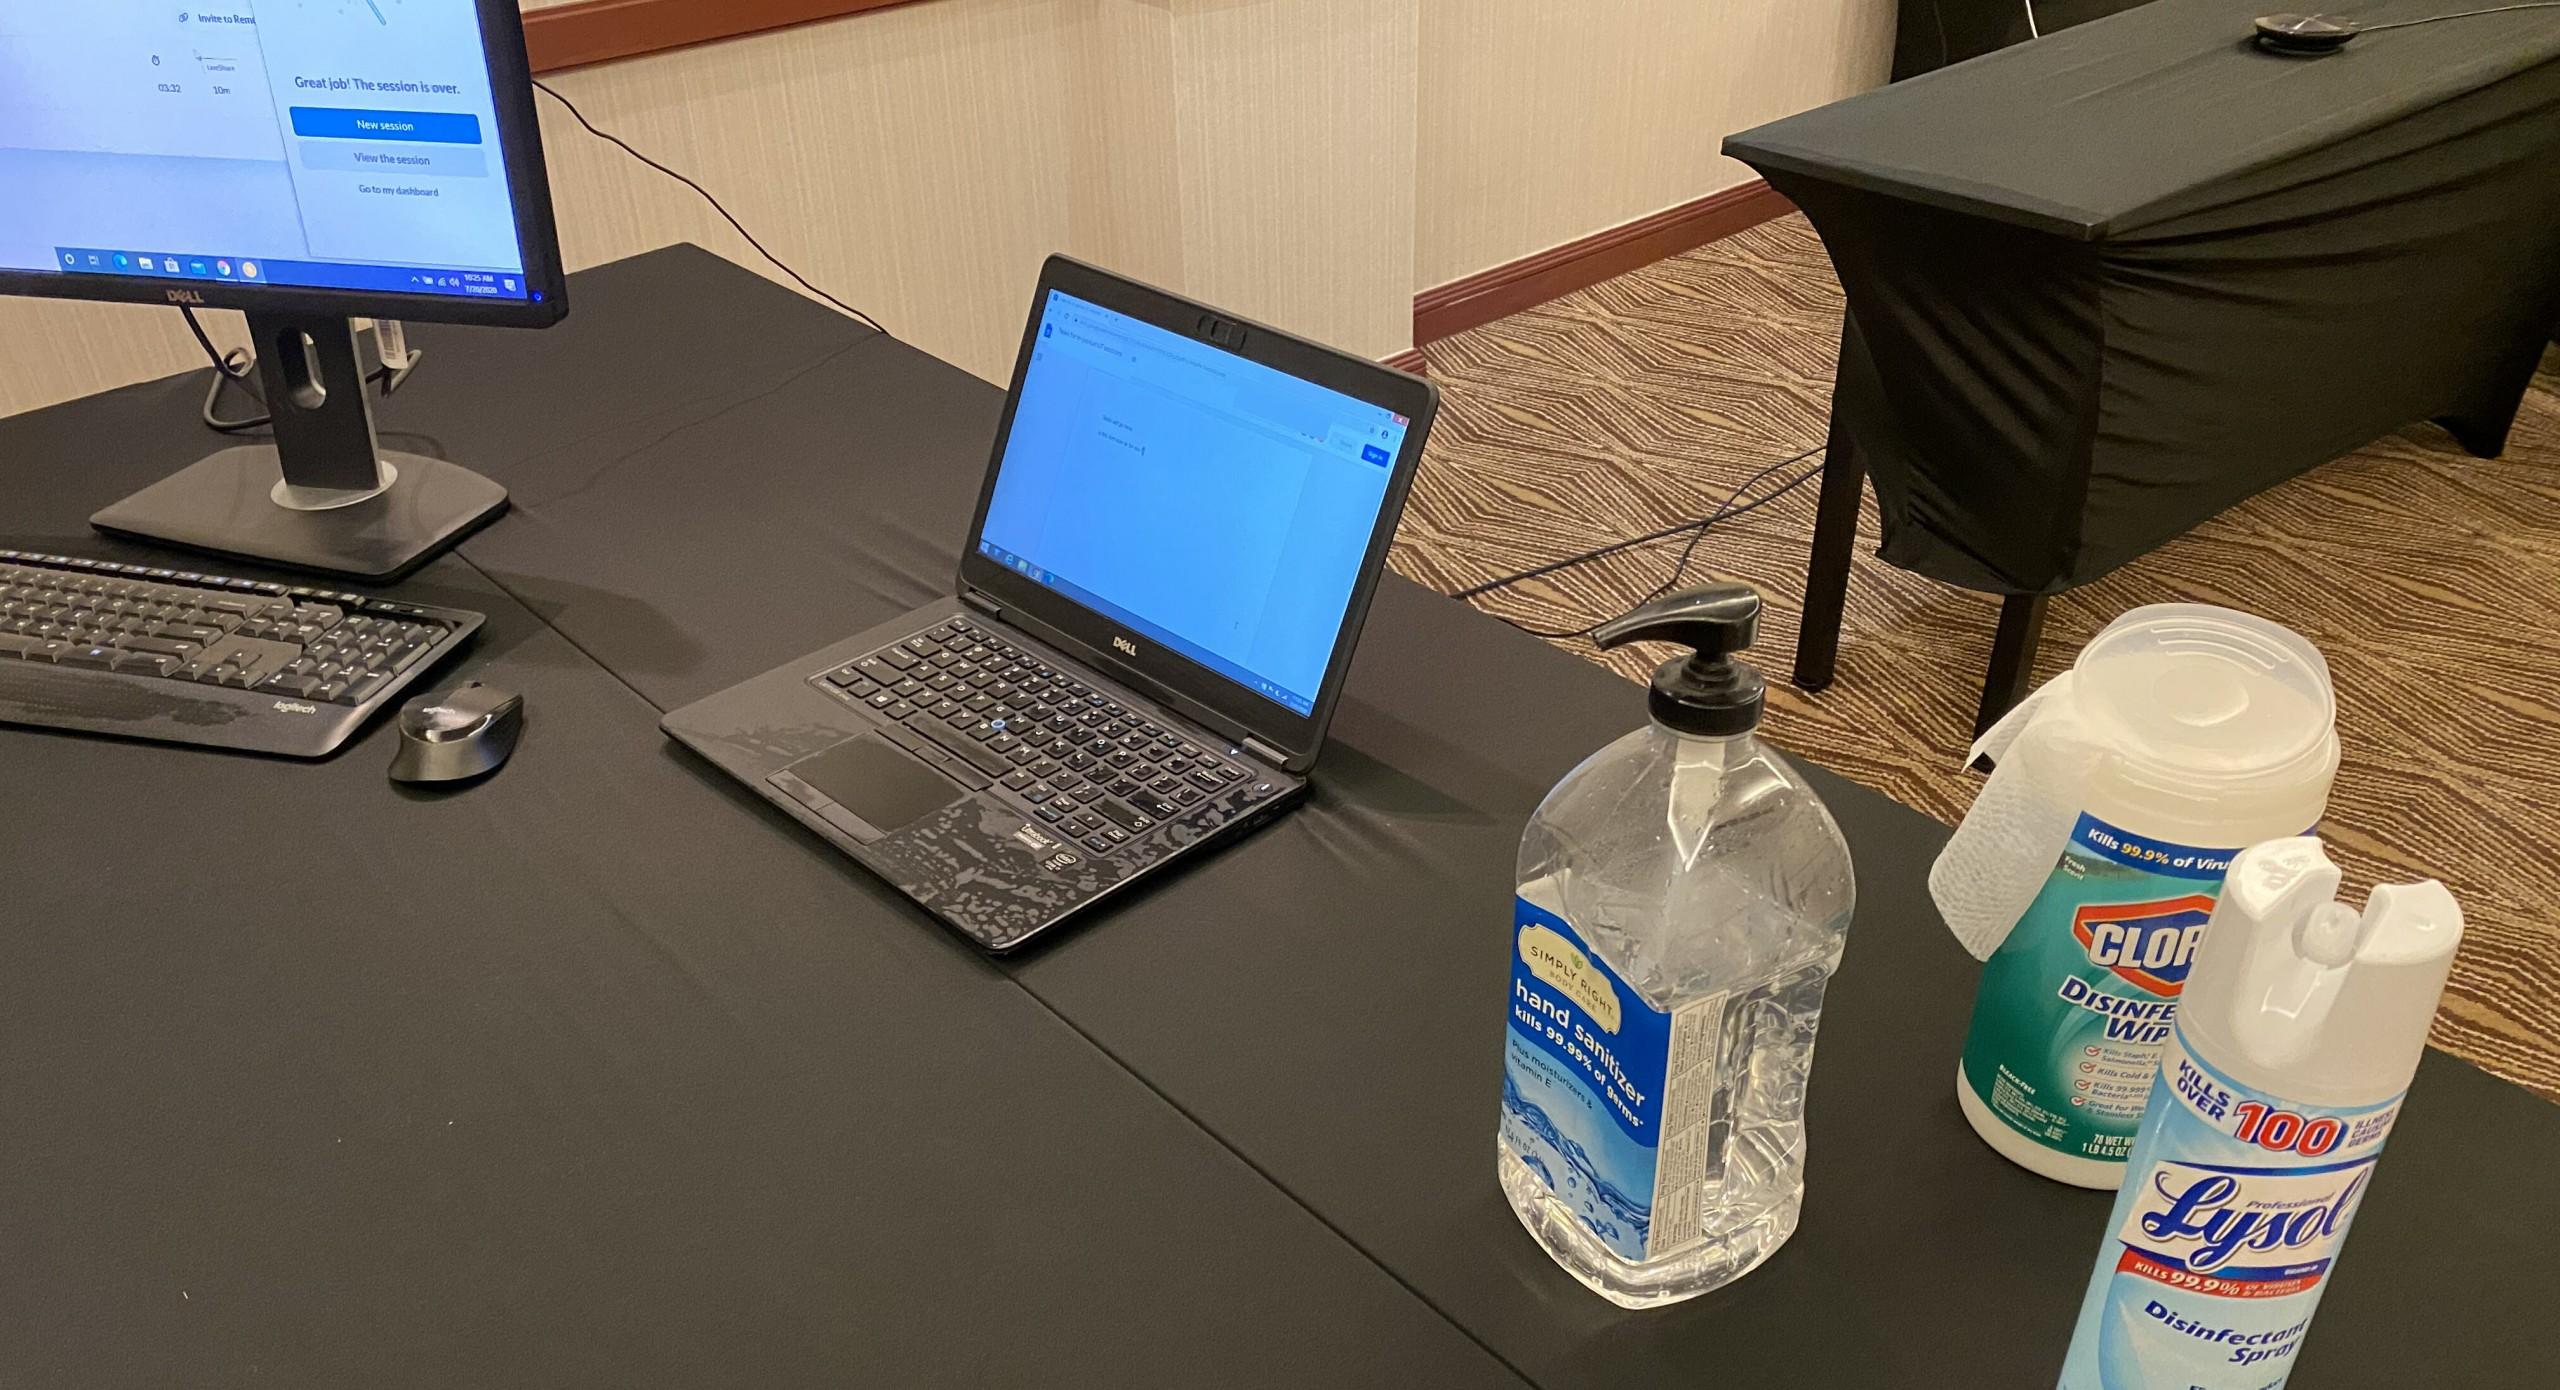 Participant work station with computer, laptop to view tasks, and disinfectant supplies